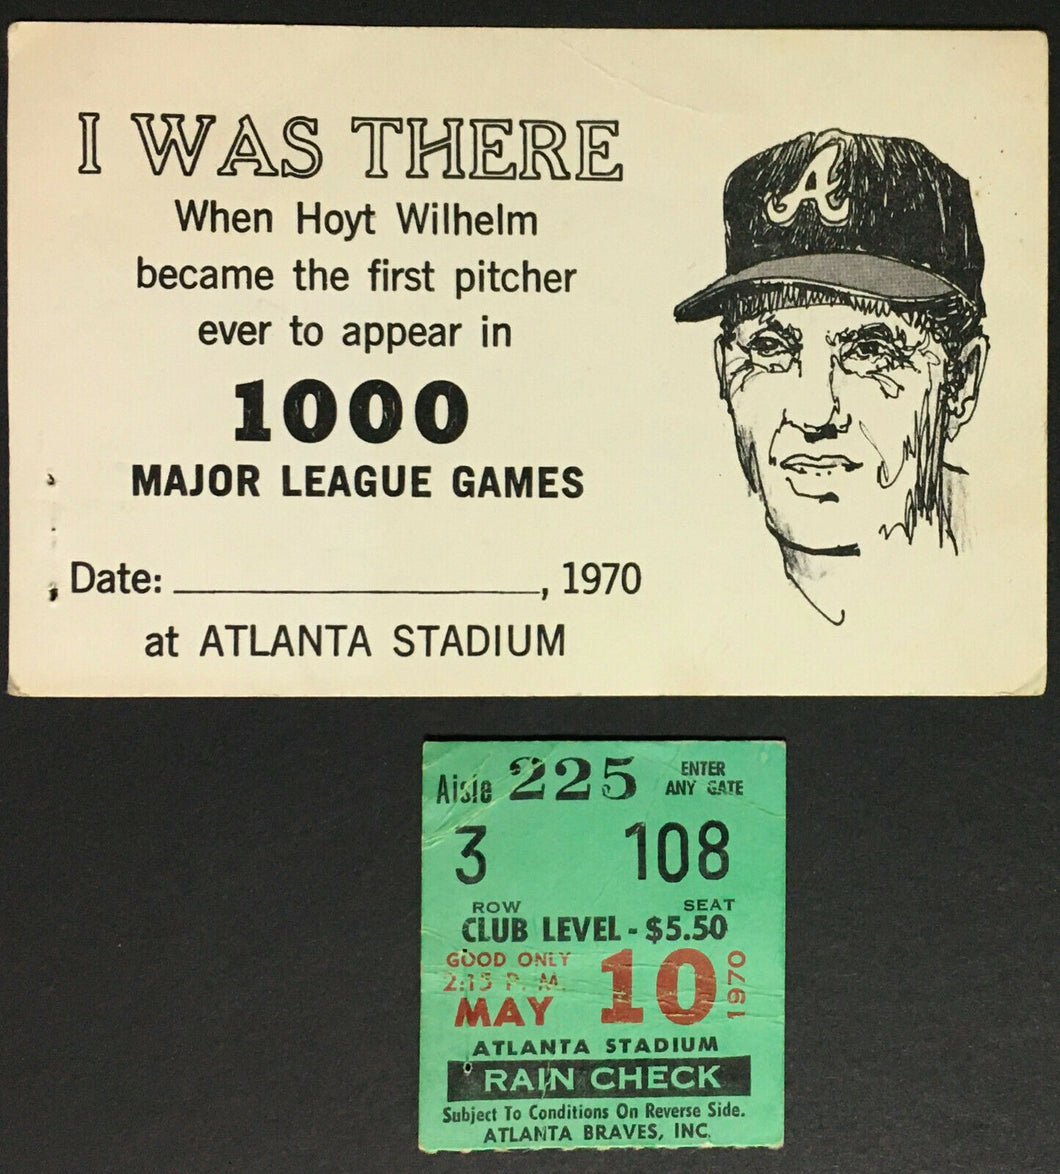 1970 MLB Hoyt Wilhelm Signed First Pitcher Appearing 1000 Games Card + Ticket